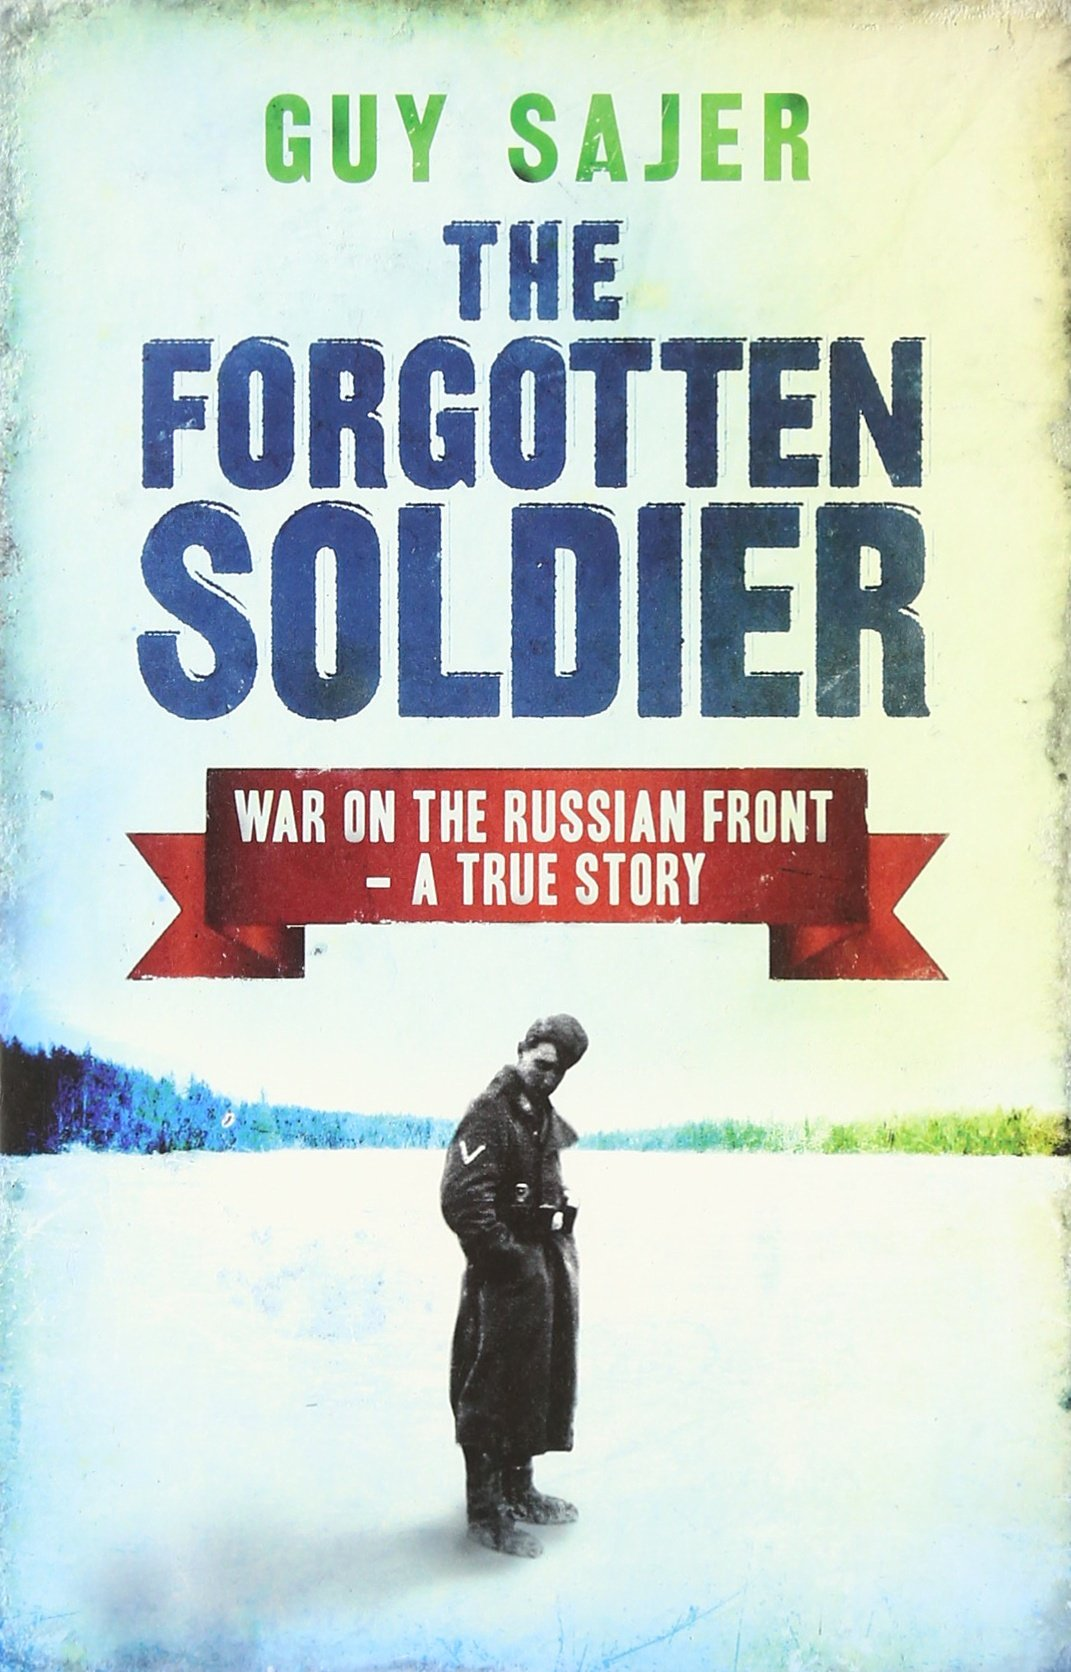 The Forgotten Soldier: War On The Russian Front  A True Story:  Amazon: Guy Sajer: 9780304352401: Books